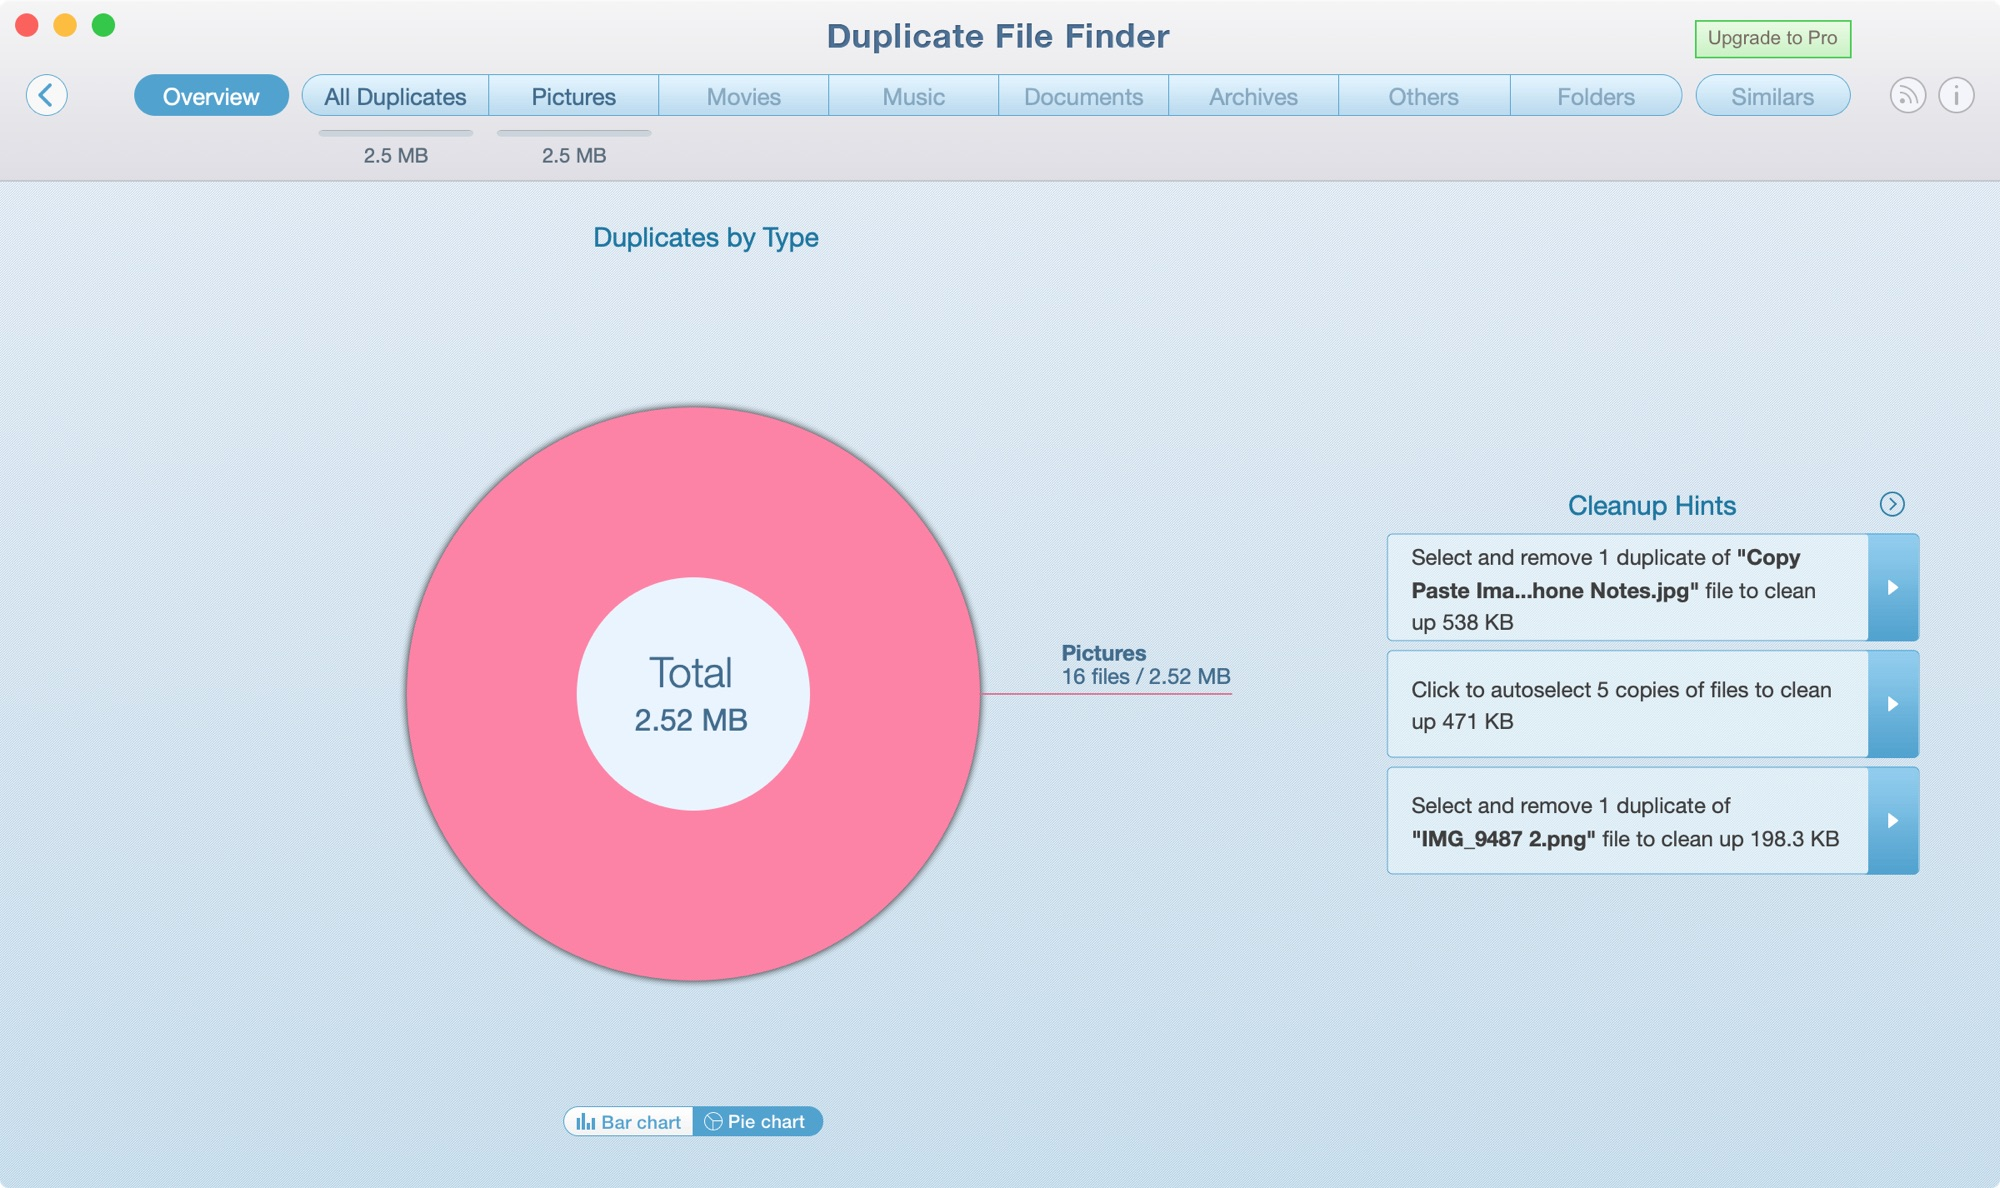 Duplicate File Finder Overview Mac